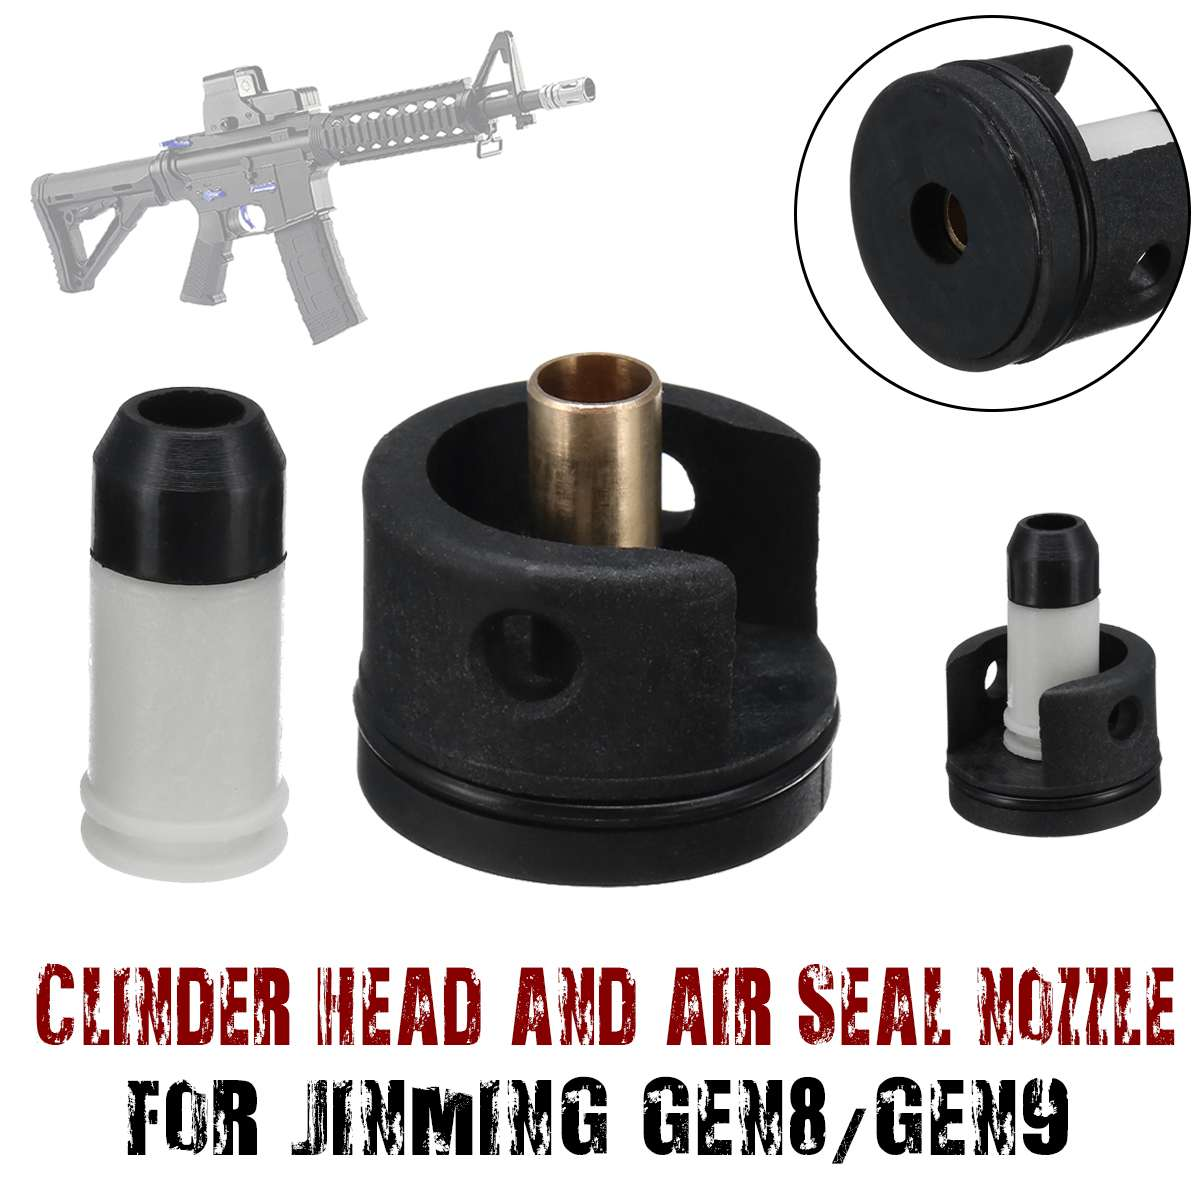 Upgrade Cylinder Head With Nylon Pump Nozzle For Jinming Gen 8 Gen 9 M4A1 Gel Ball Blasting Gearbox Accessories Kit